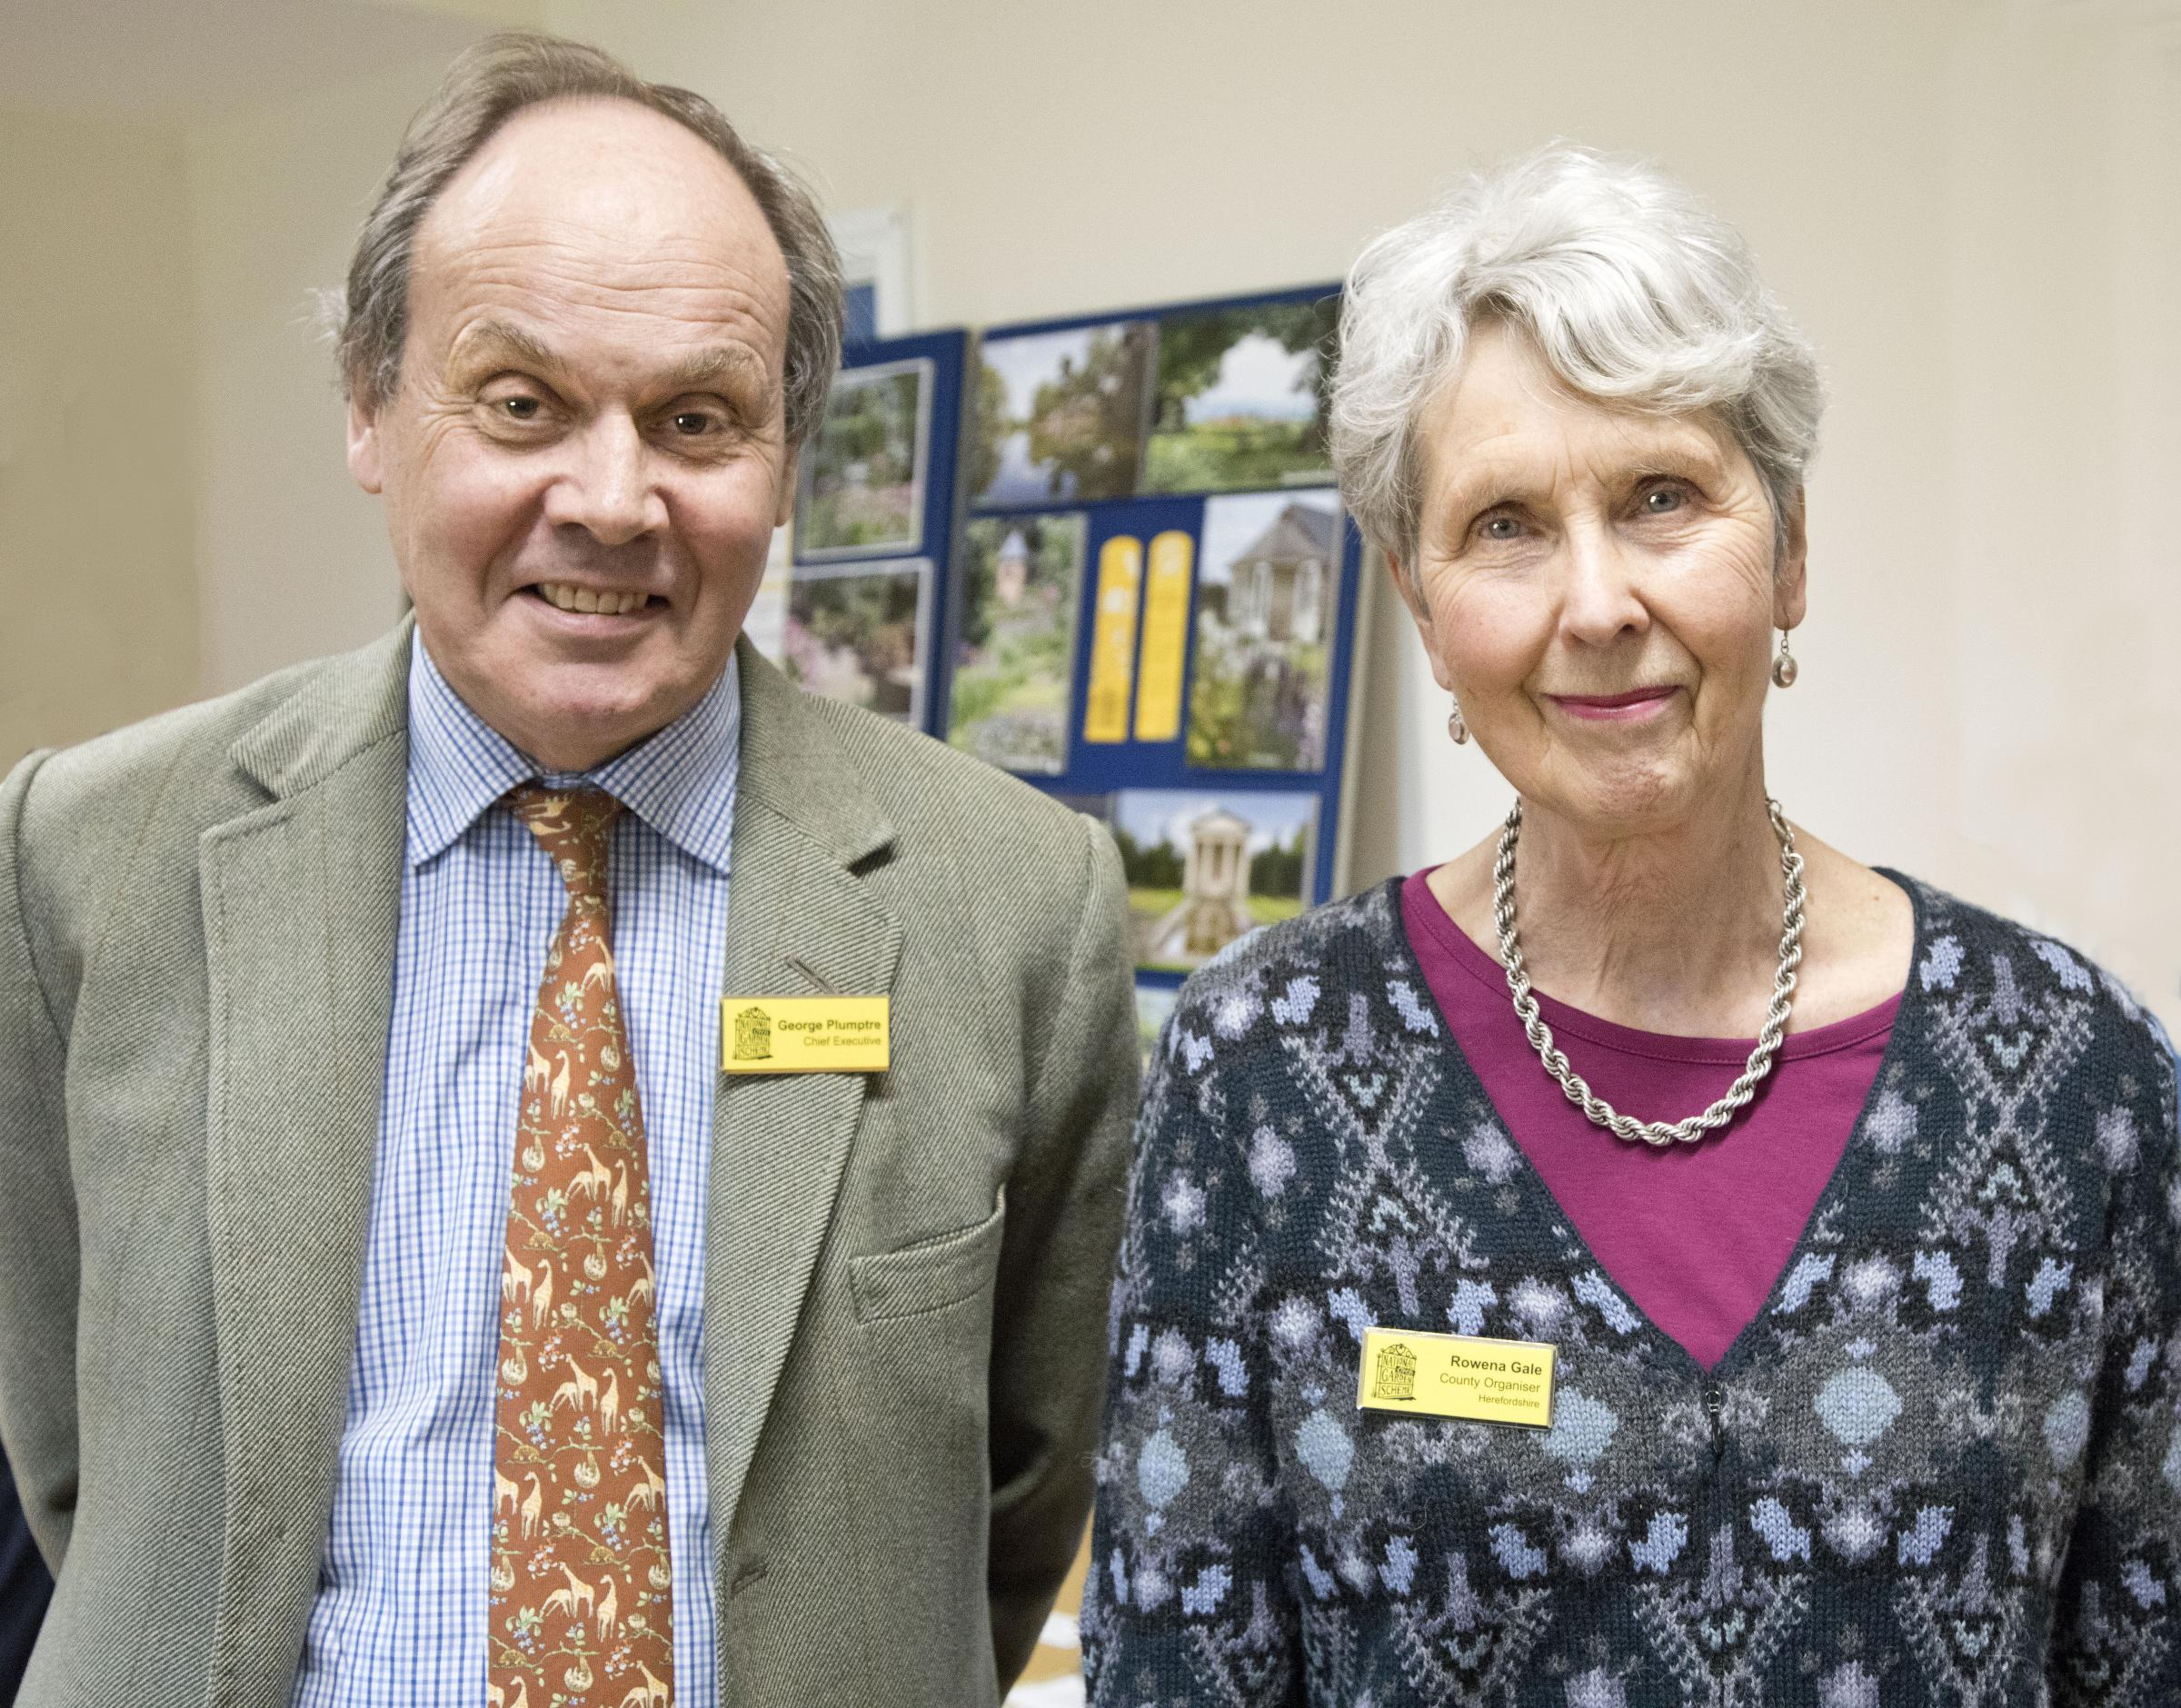 George Plumptre (NGS chief executive) and Rowena Gale (county organiser) Photo by David Rose